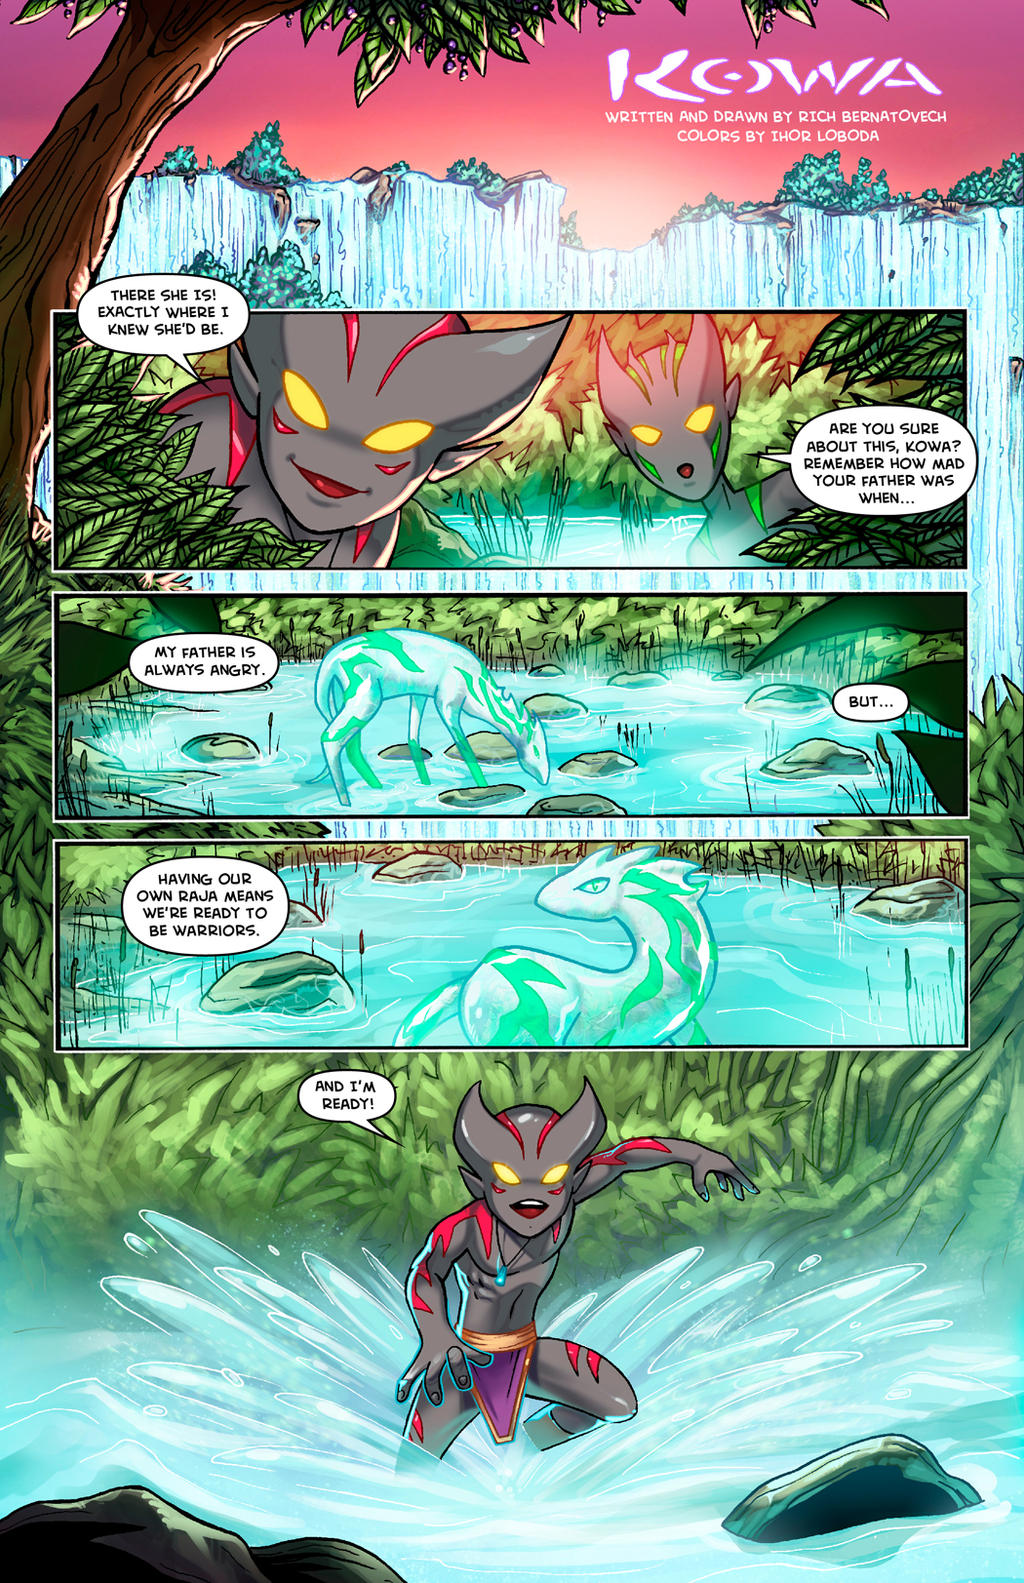 KOWA WEBCOMIC PAGE 1 by RichBernatovech